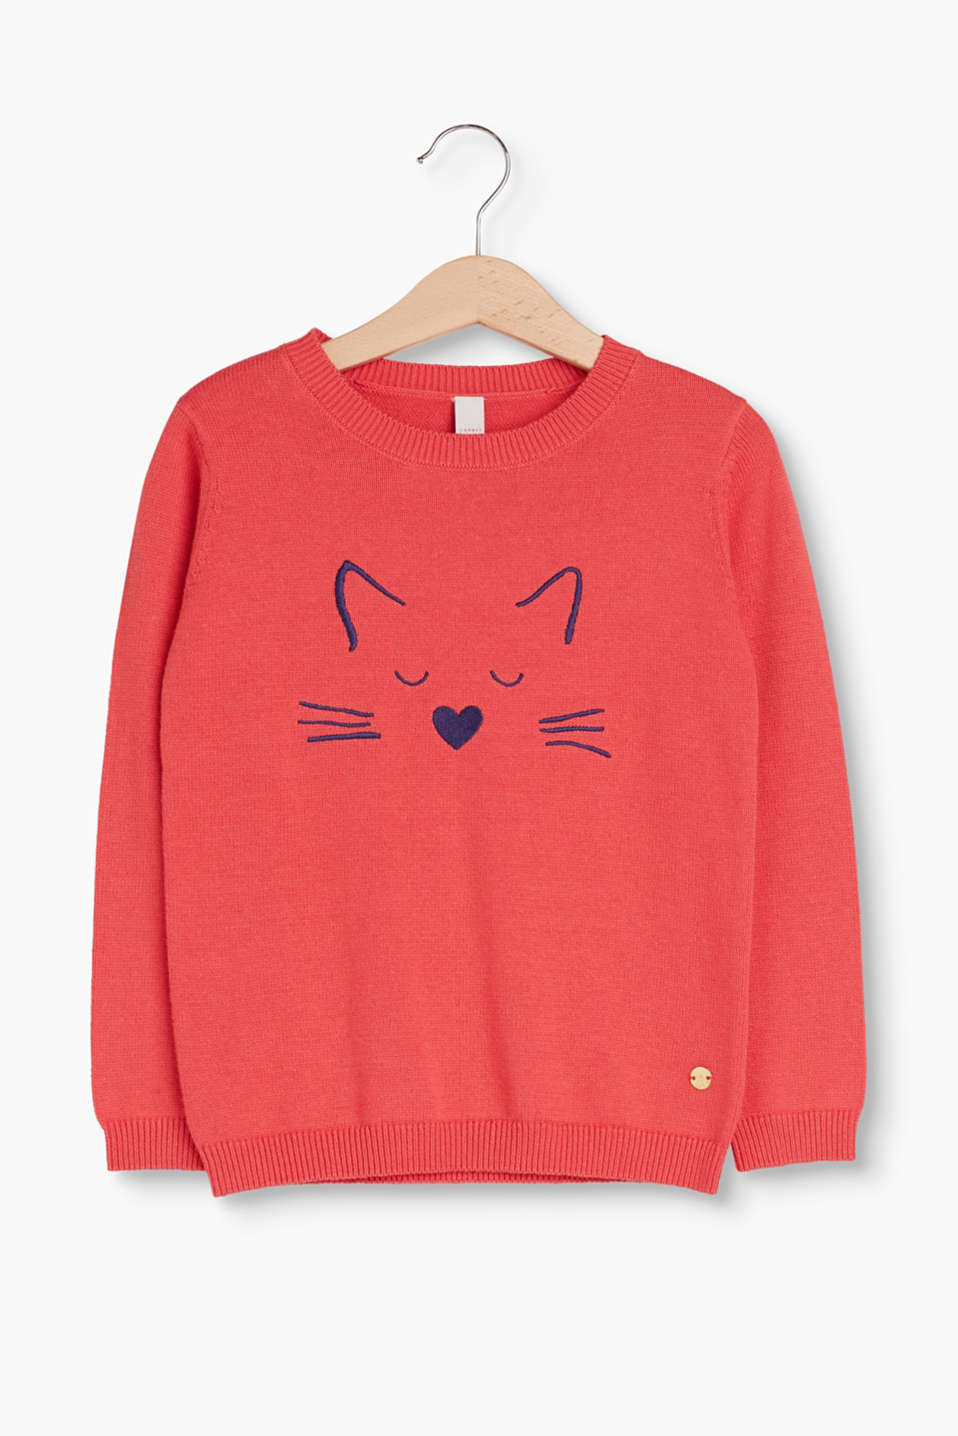 Soft round-neck jumper in pure cotton with a cute cat face